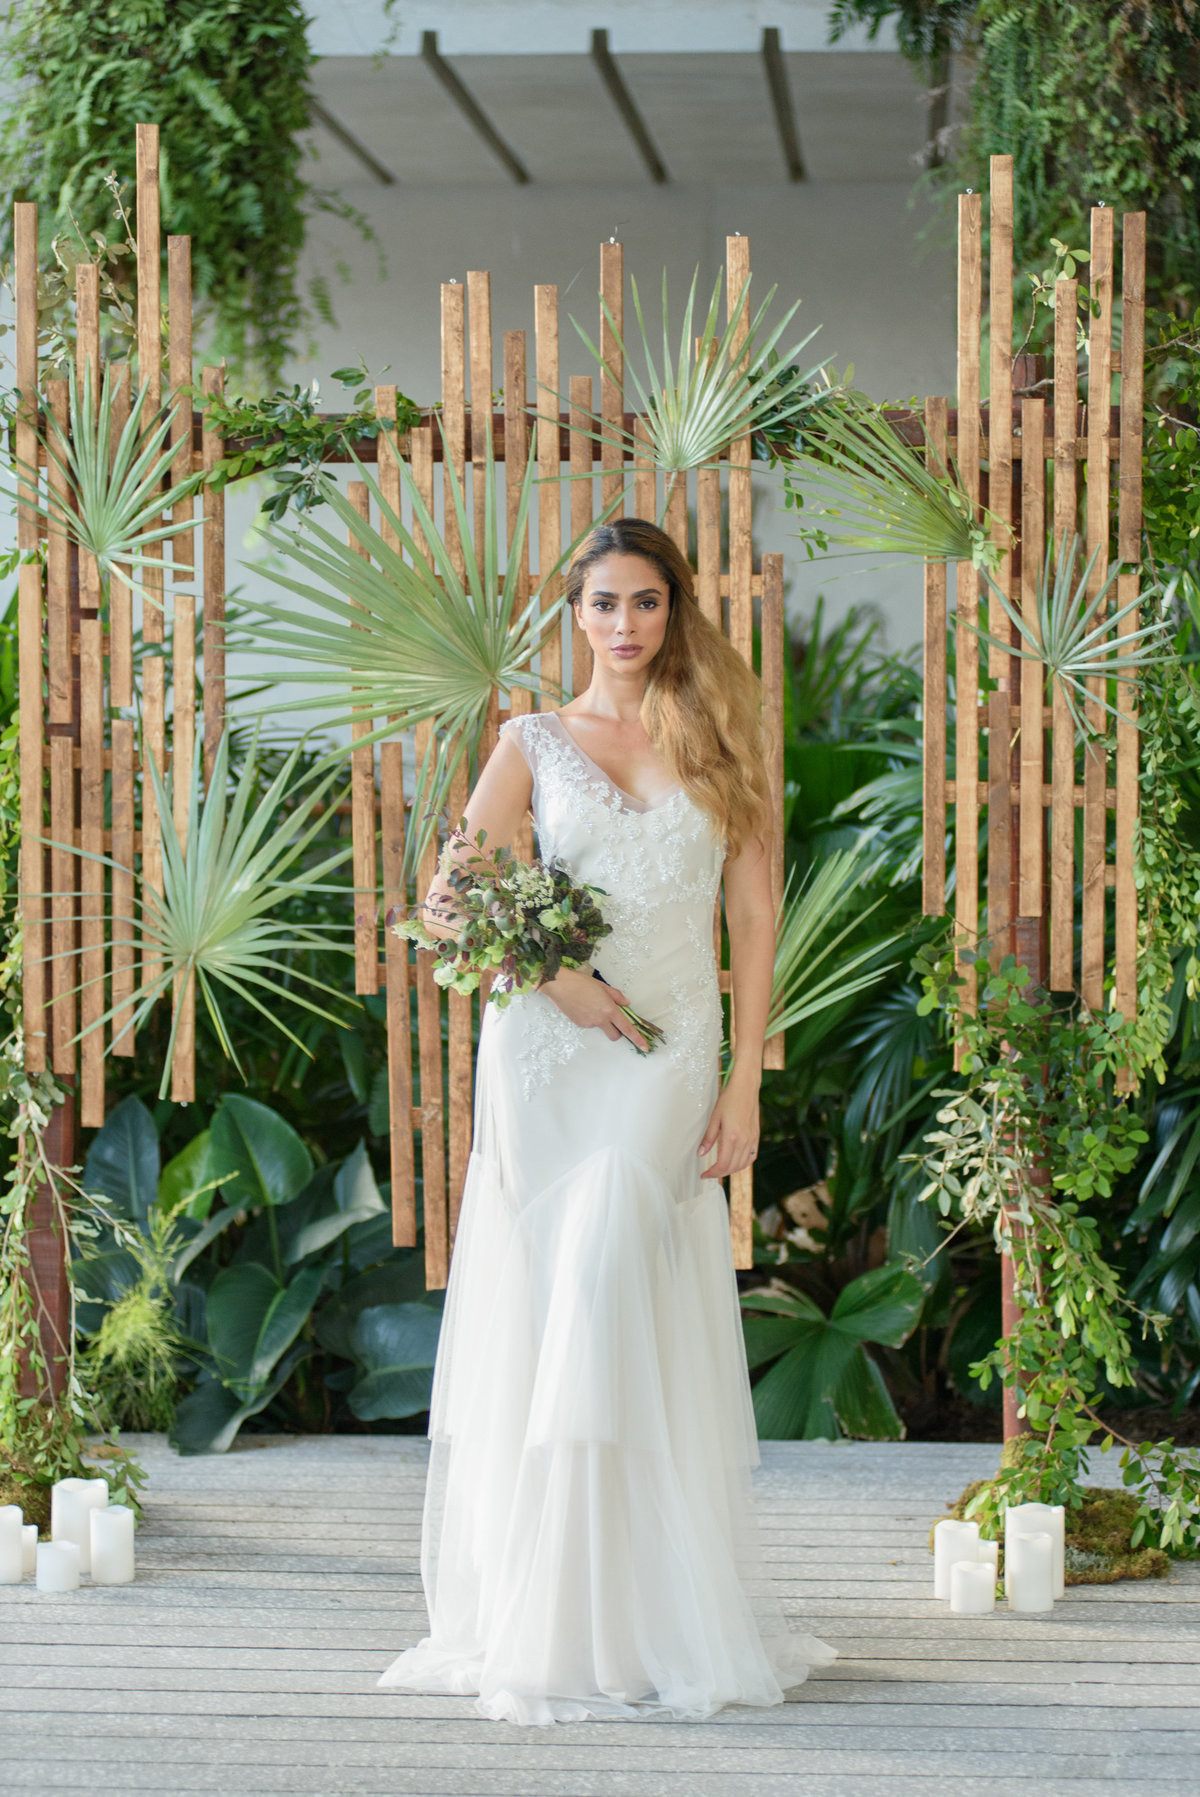 Miami Wedding Photographer | PAMM Bridal Portraits 26